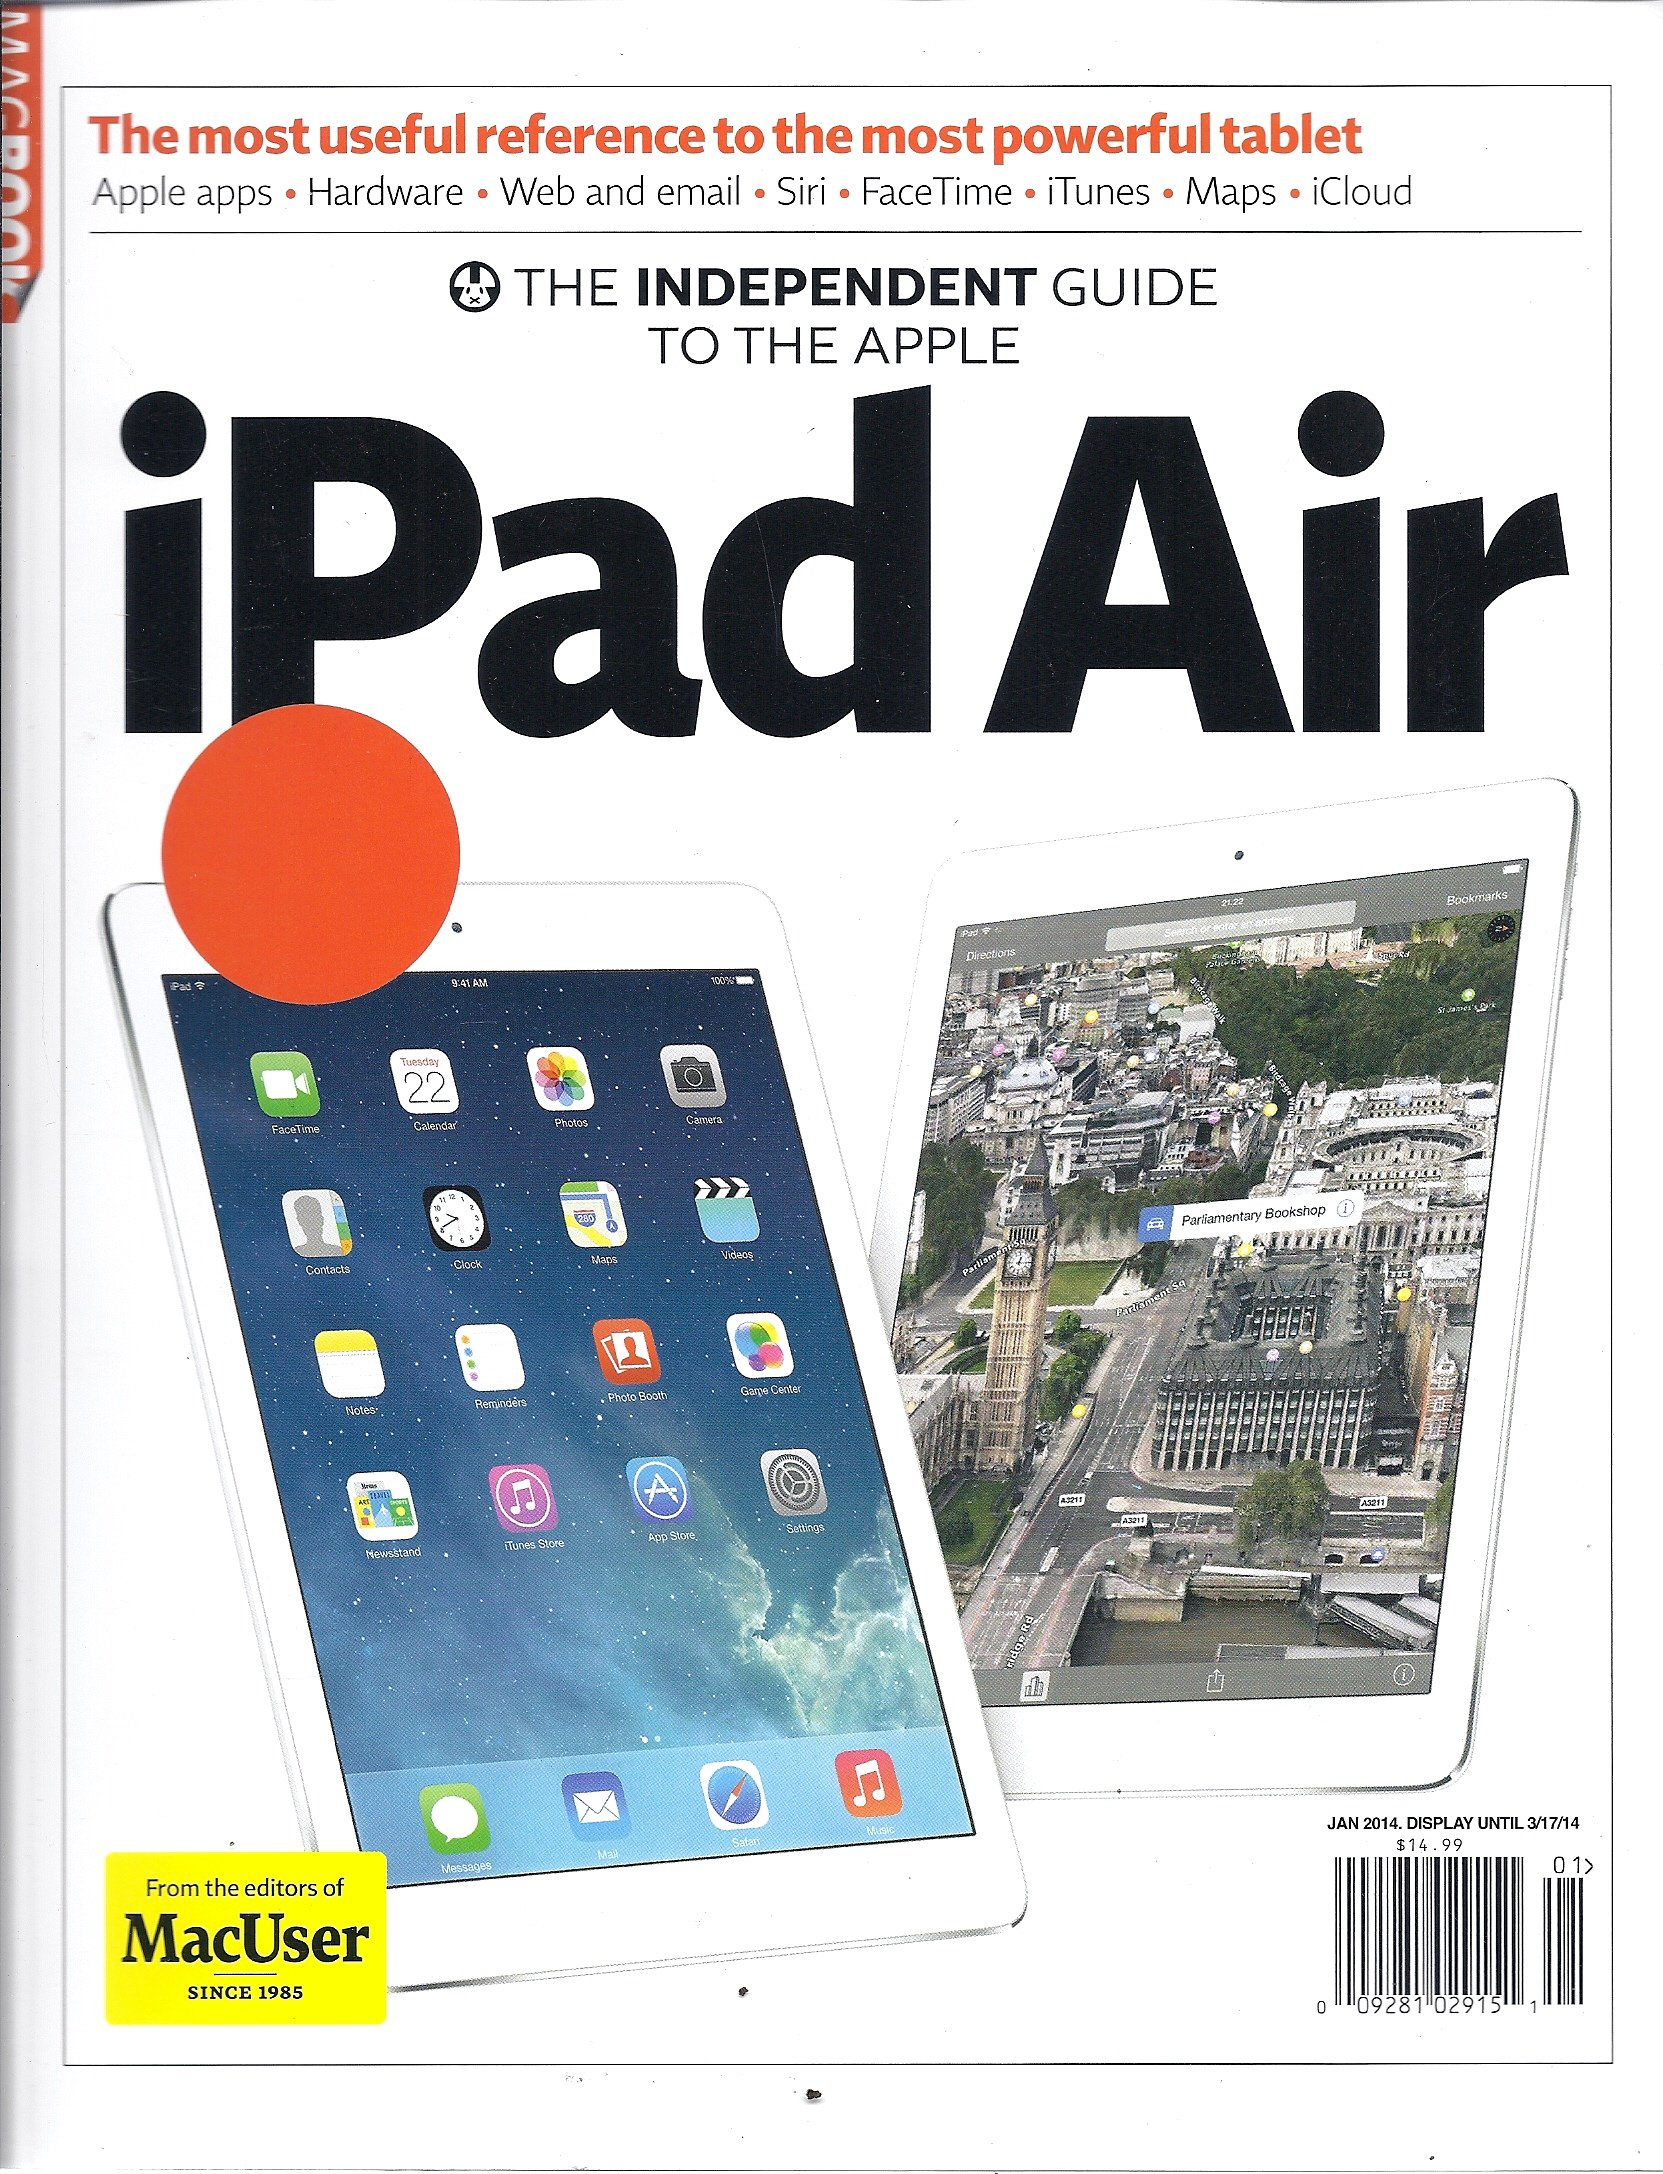 The Independent Guide to the iPad Air (January 2014) pdf